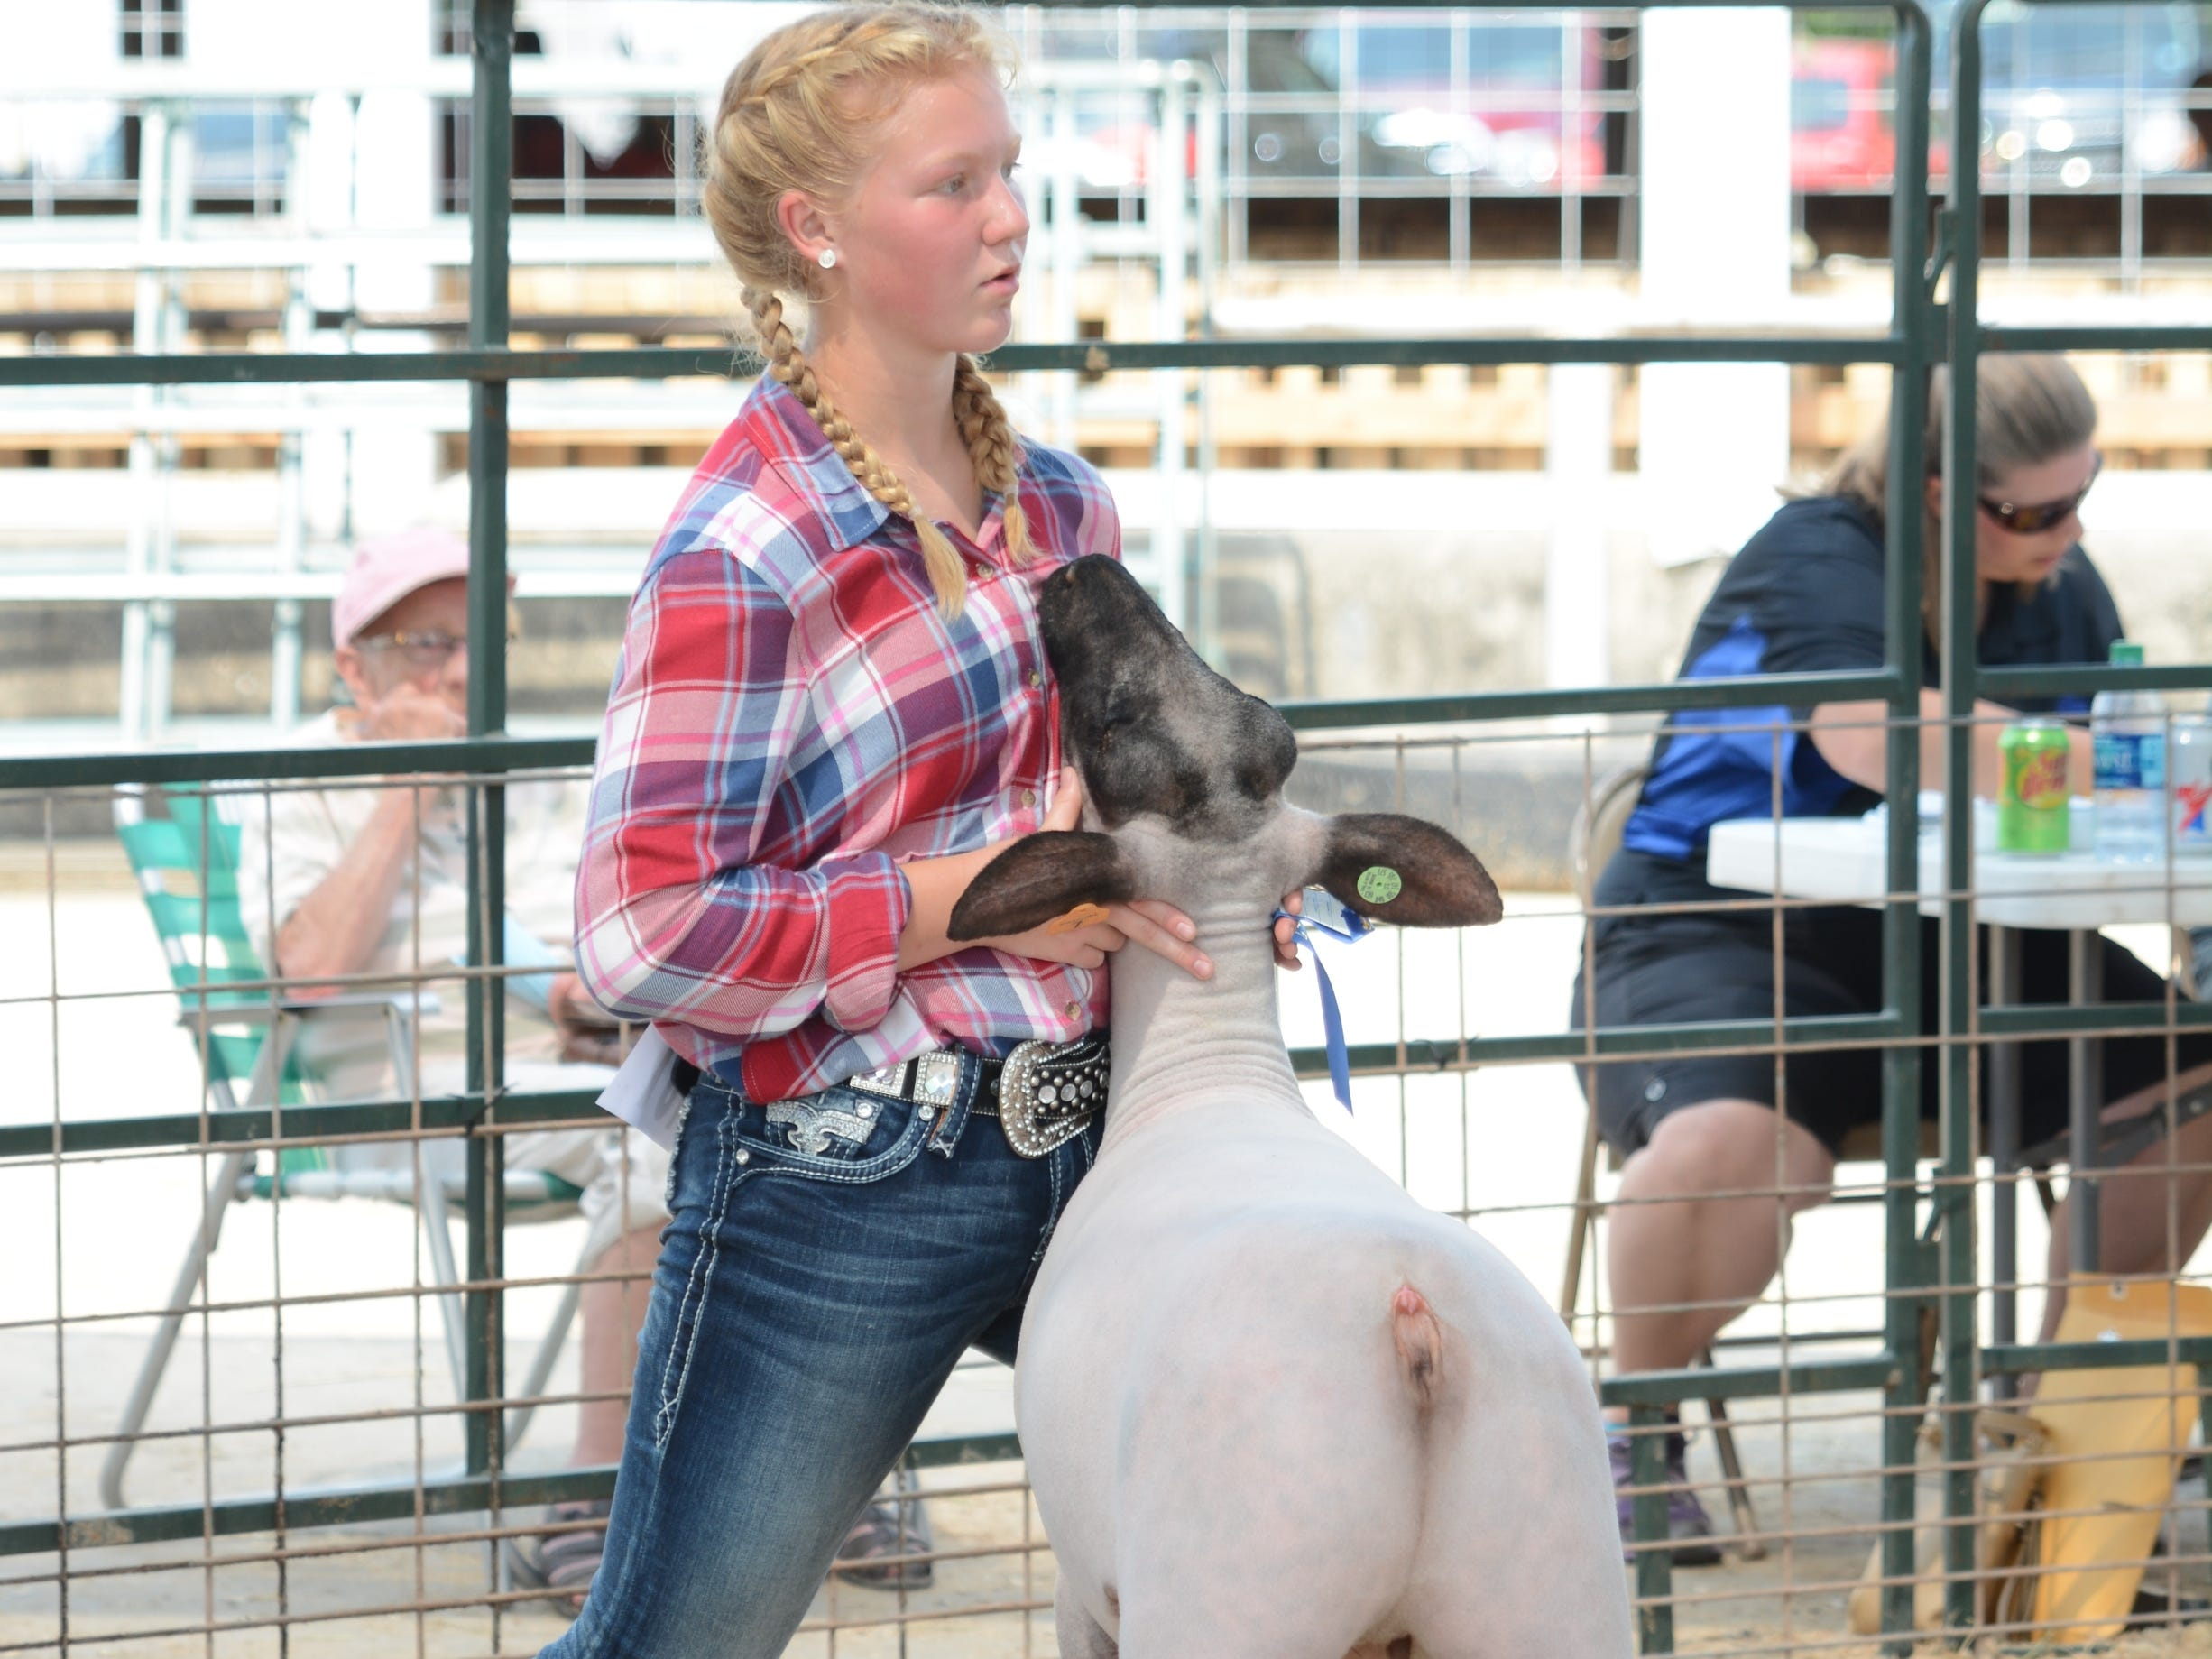 Macie Reed of Northern Riders 4-H Club steadies her sheep during a show Friday at the Oconto County Fair. Reed won the Heavyweight Class for Market Lambs and the prize of Grand Champion.